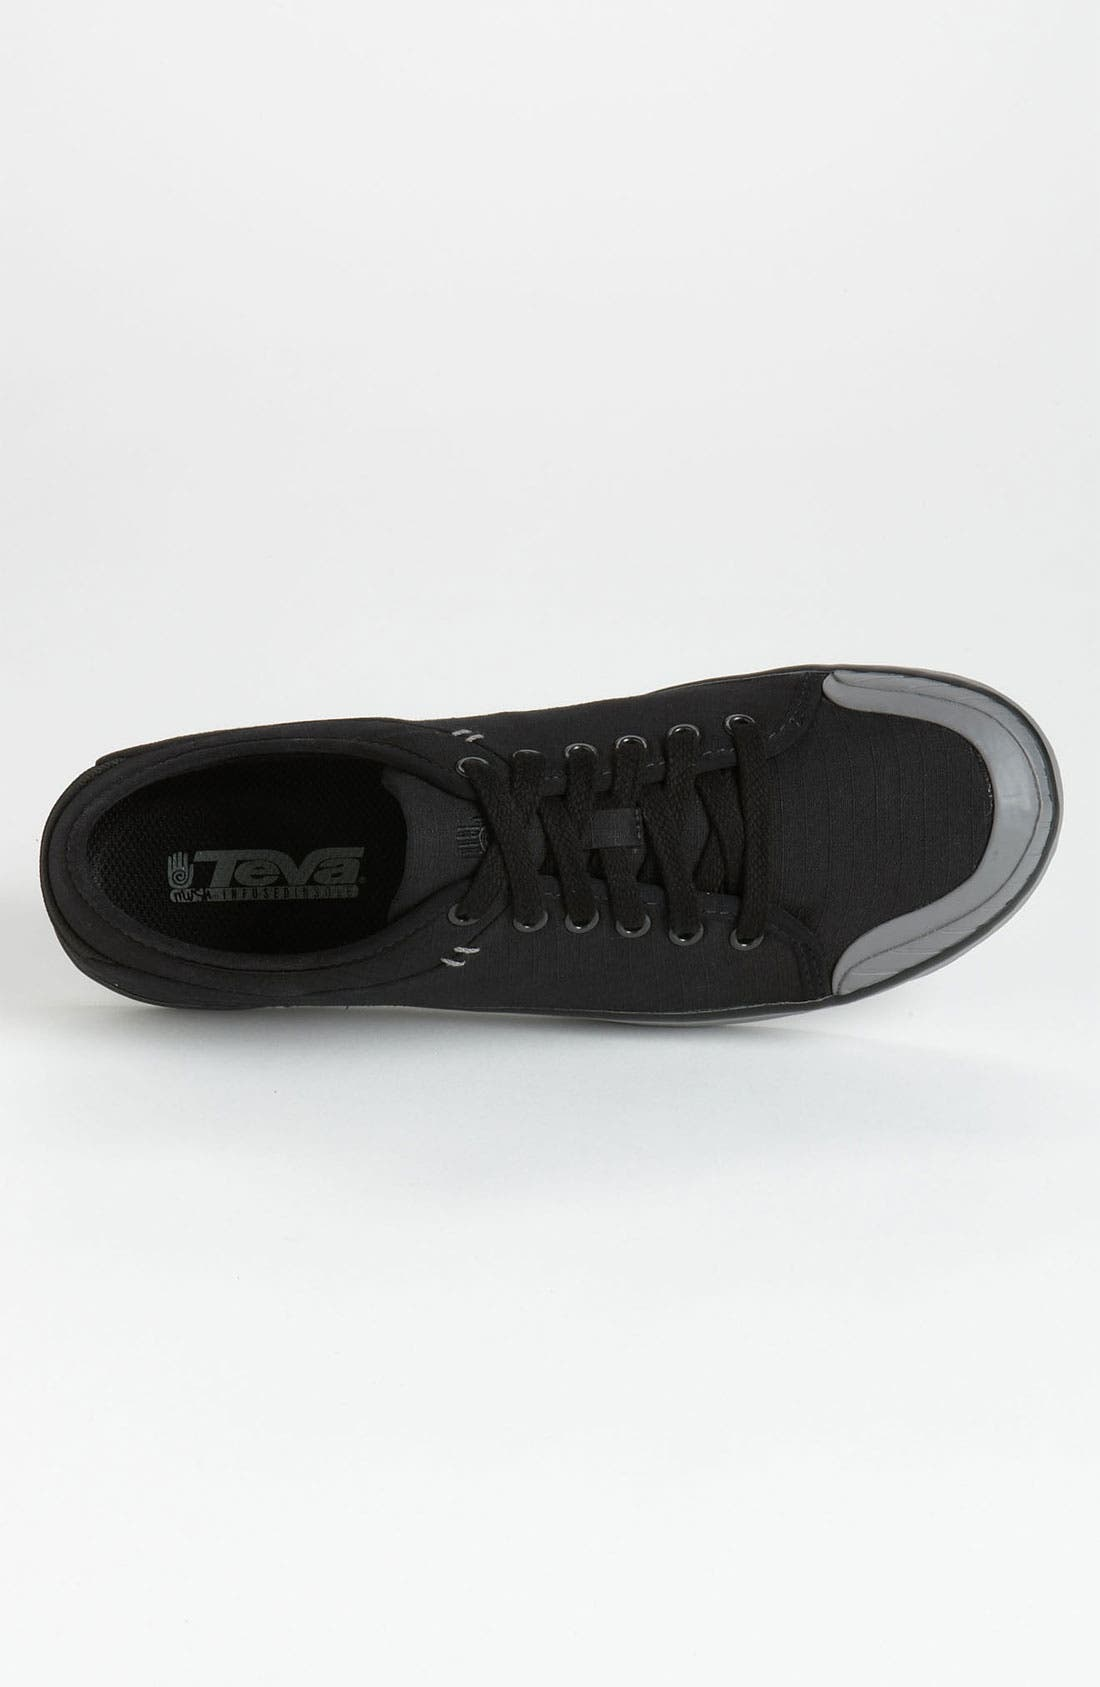 TEVA,                             'Joyride' Sneaker,                             Alternate thumbnail 4, color,                             001